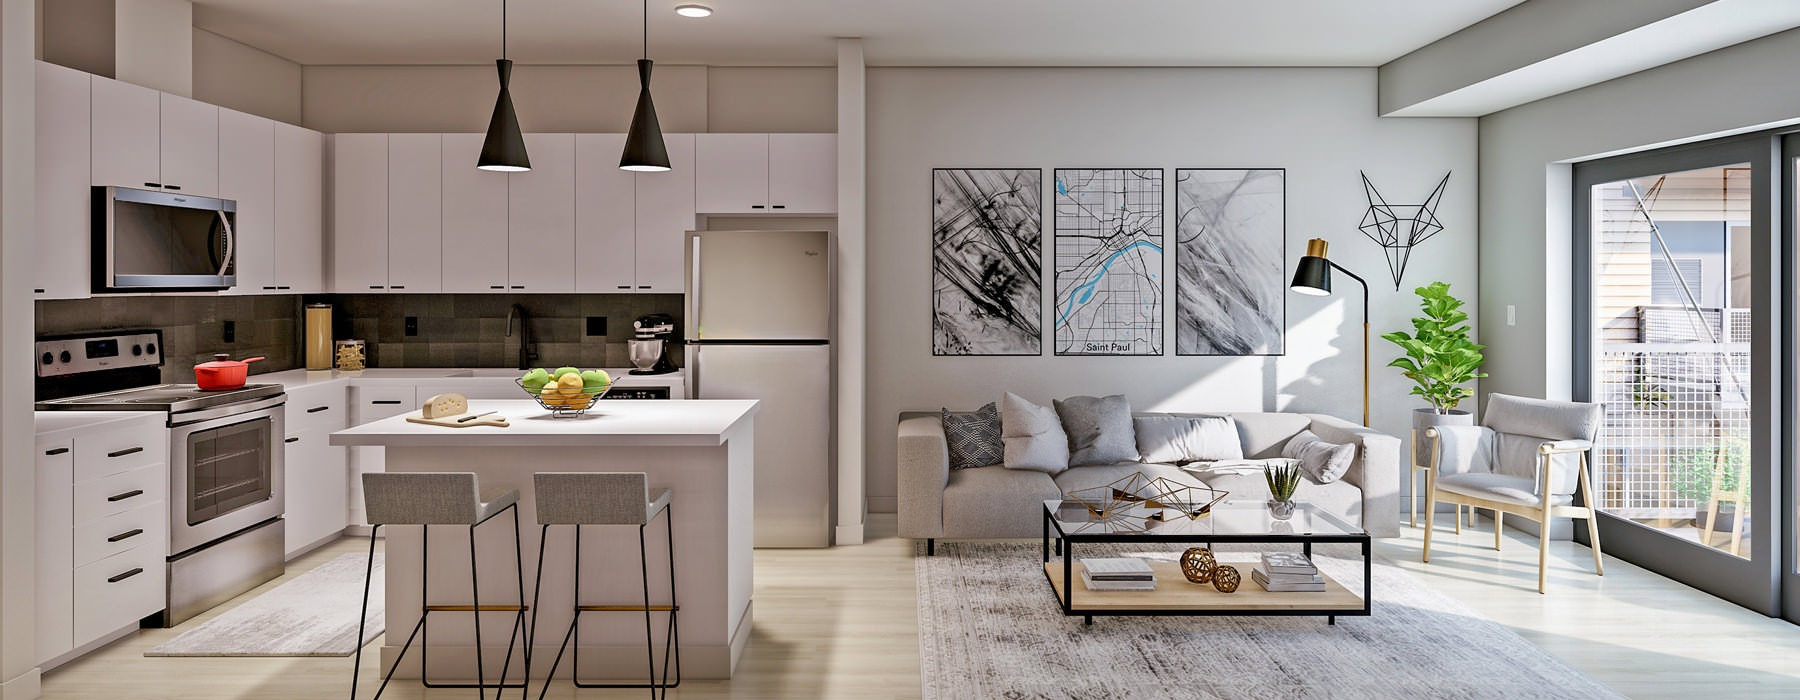 Rice a available studio 1 2 3 bedroom apartments in - 1 bedroom apartments in st paul mn ...